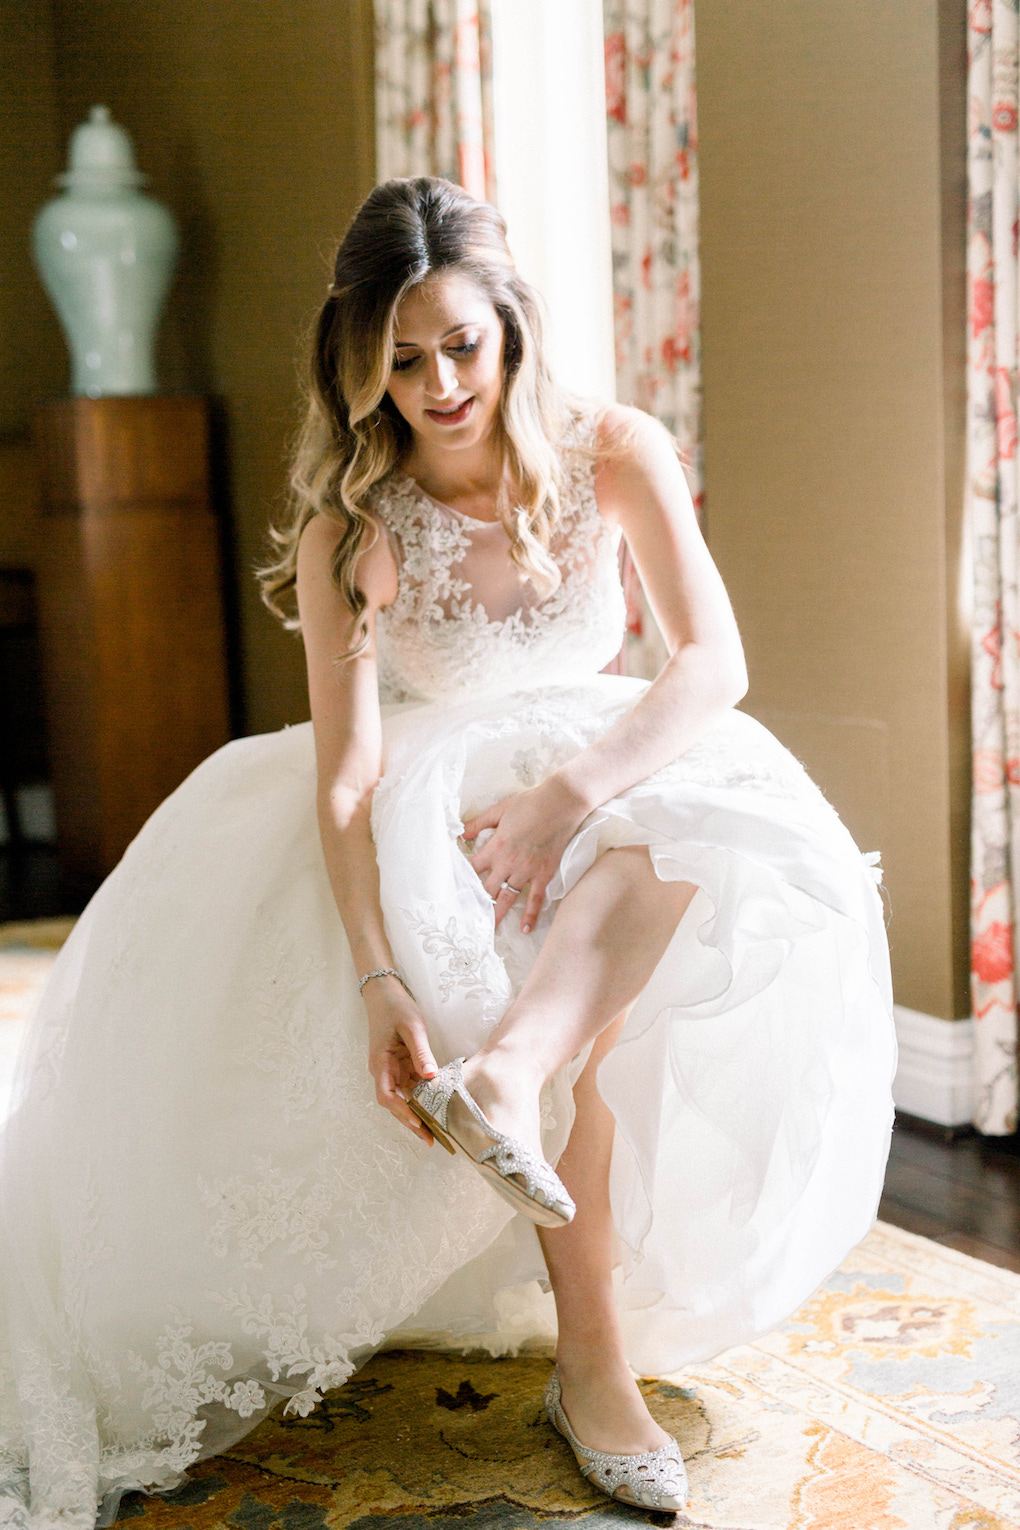 Bride putting on wedding shoes: Romantic Fairytale wedding at the Omni William Penn in Pittsburgh, PA planned by Exhale Events. Find more wedding inspiration at exhale-events.com!